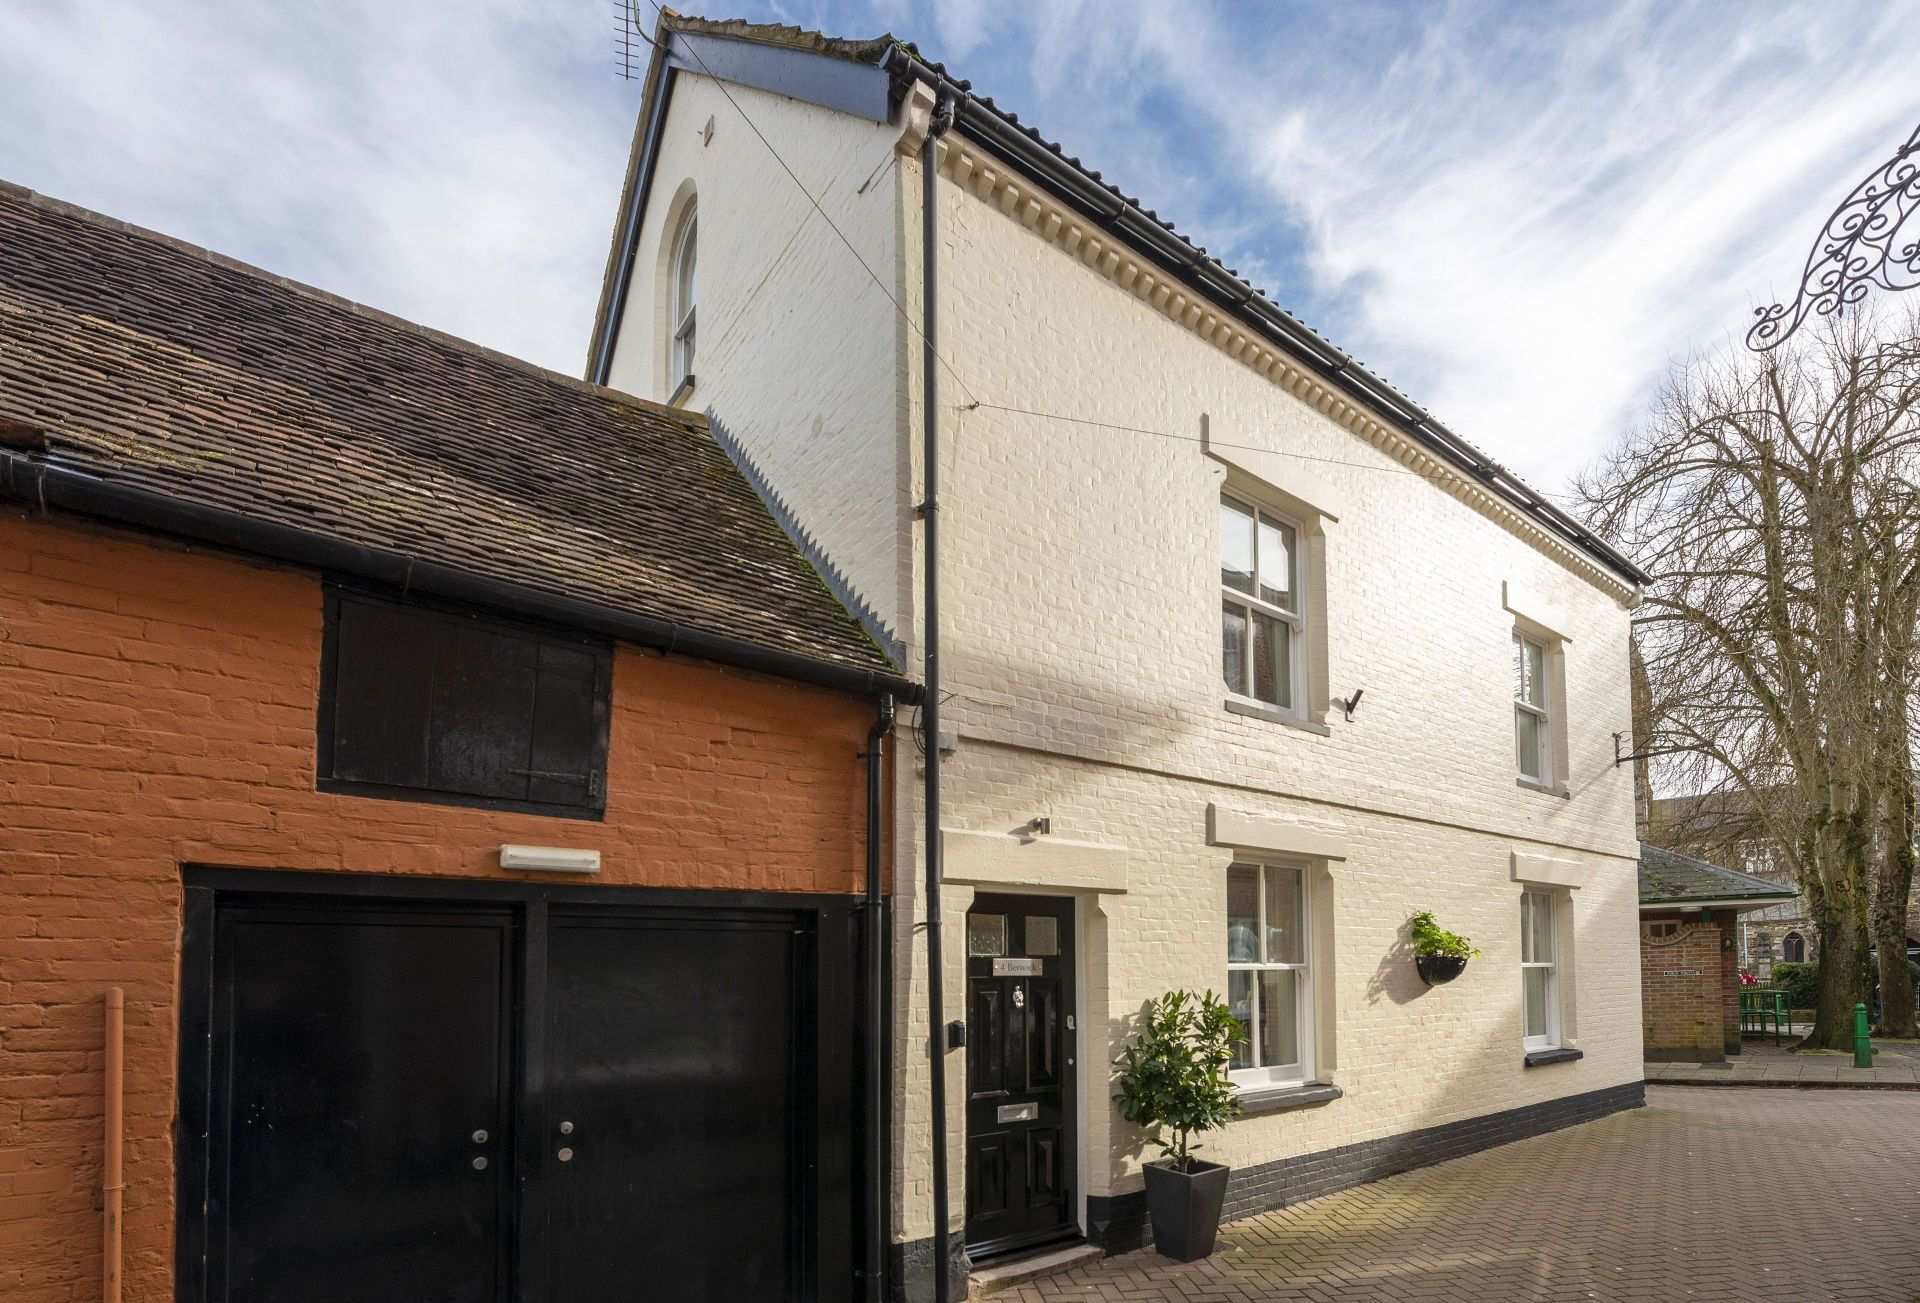 Berwick a holiday cottage rental for 4 in Wimborne and surrounding villages,